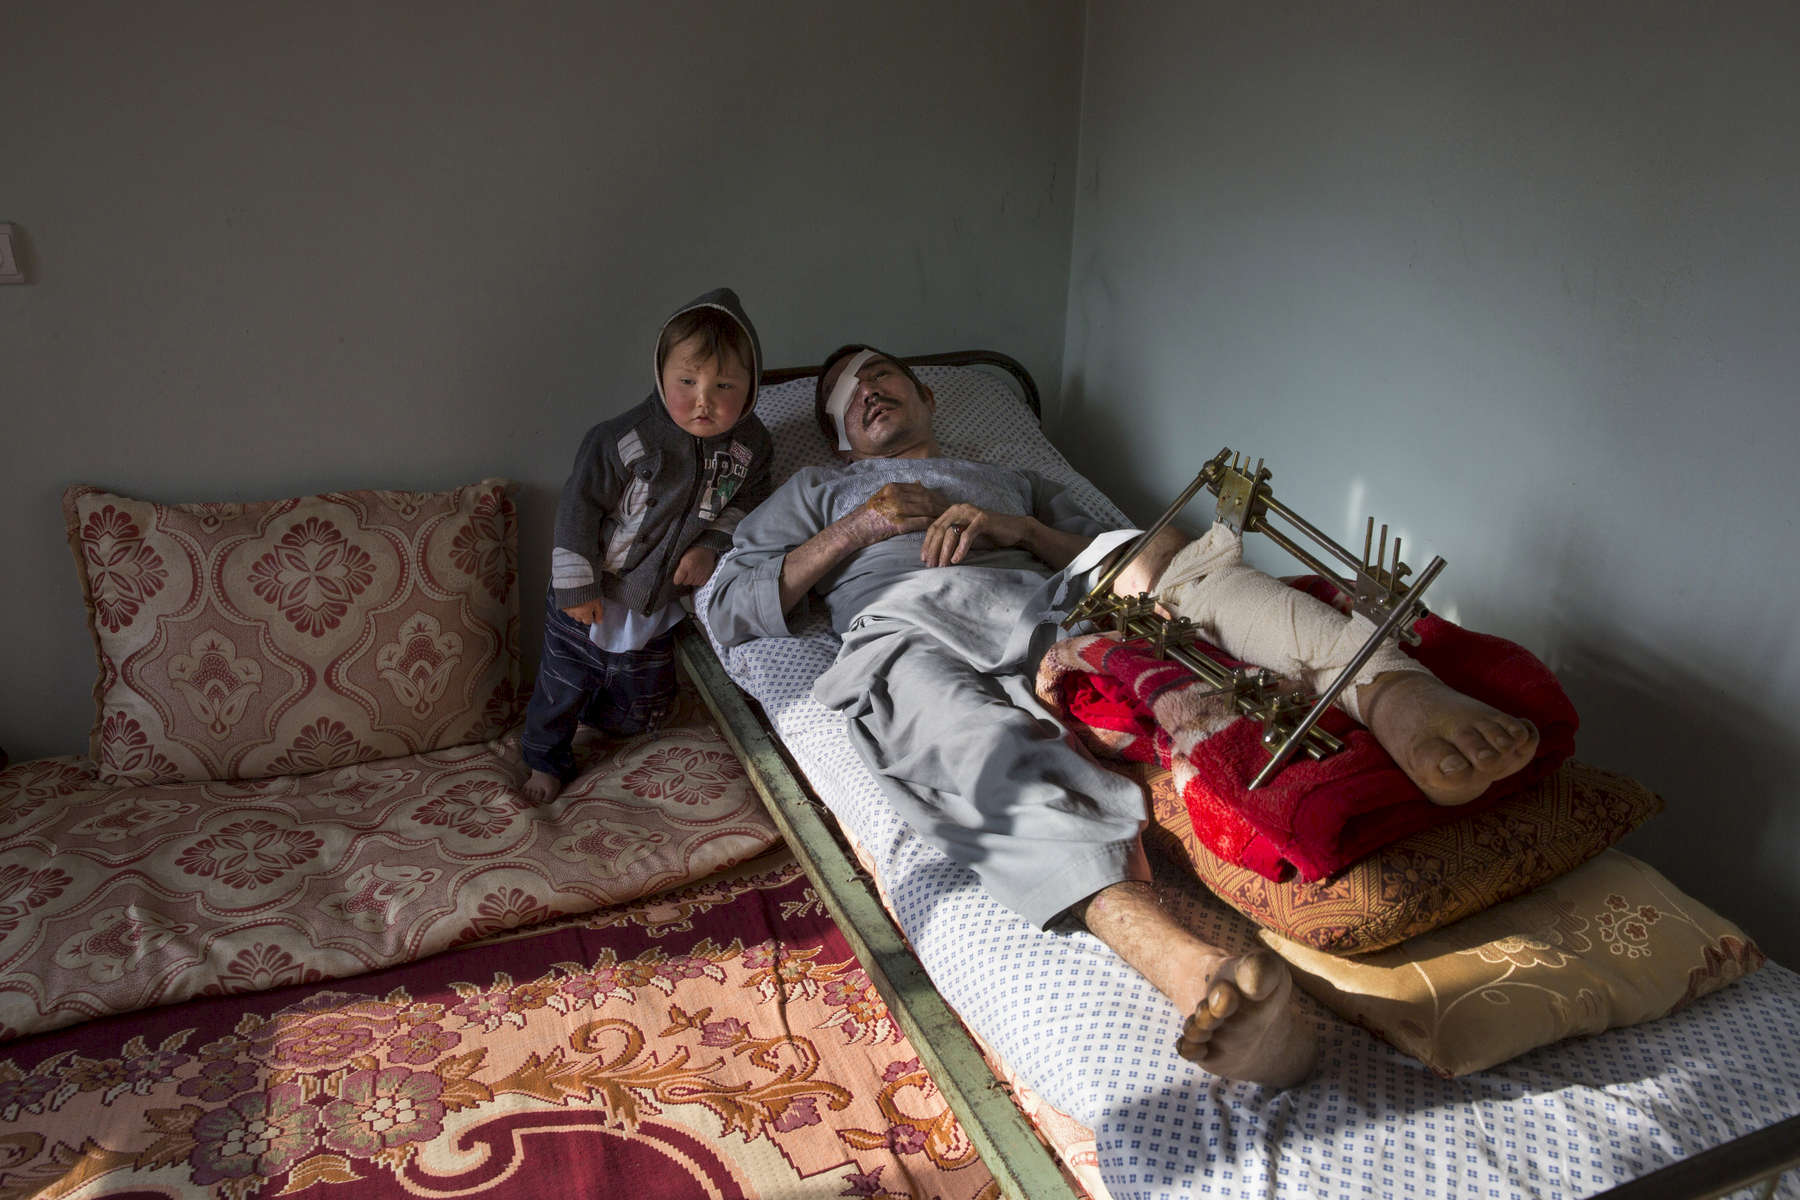 KABUL, AFGHANISTAN -APRIL 9, 2016:  Abdul Hussain Ayoobi, is seen at home with his son Ali Akbar, 3, who is trying to understand why his father hurts so much all the time. Abdul, a carpenter was one of the seriously wounded victims for Tolo TV. The employees had finished a day's work at Tolo TV, one of Afghanistan's largest entertainment channels, when they boarded a company bus in Kabul that was rammed by a car driven by a Taliban suicide bomber. Seven people were killed and at least 25 wounded in the attack.Afghan civilians are at greater risk today than at any time since Taliban rule. According to UN statistics, in the first half of 2016 at least 1,600 people had died, and more than 3,500 people were injured, a 4 per cent increase in overall civilian causalities compared to the same period last year. The upsurge in violence has had devastating consequences for civilians, with suicide bombings and targeted attacks by the Taliban and other insurgents causing 70 percent of all civilian casualties.